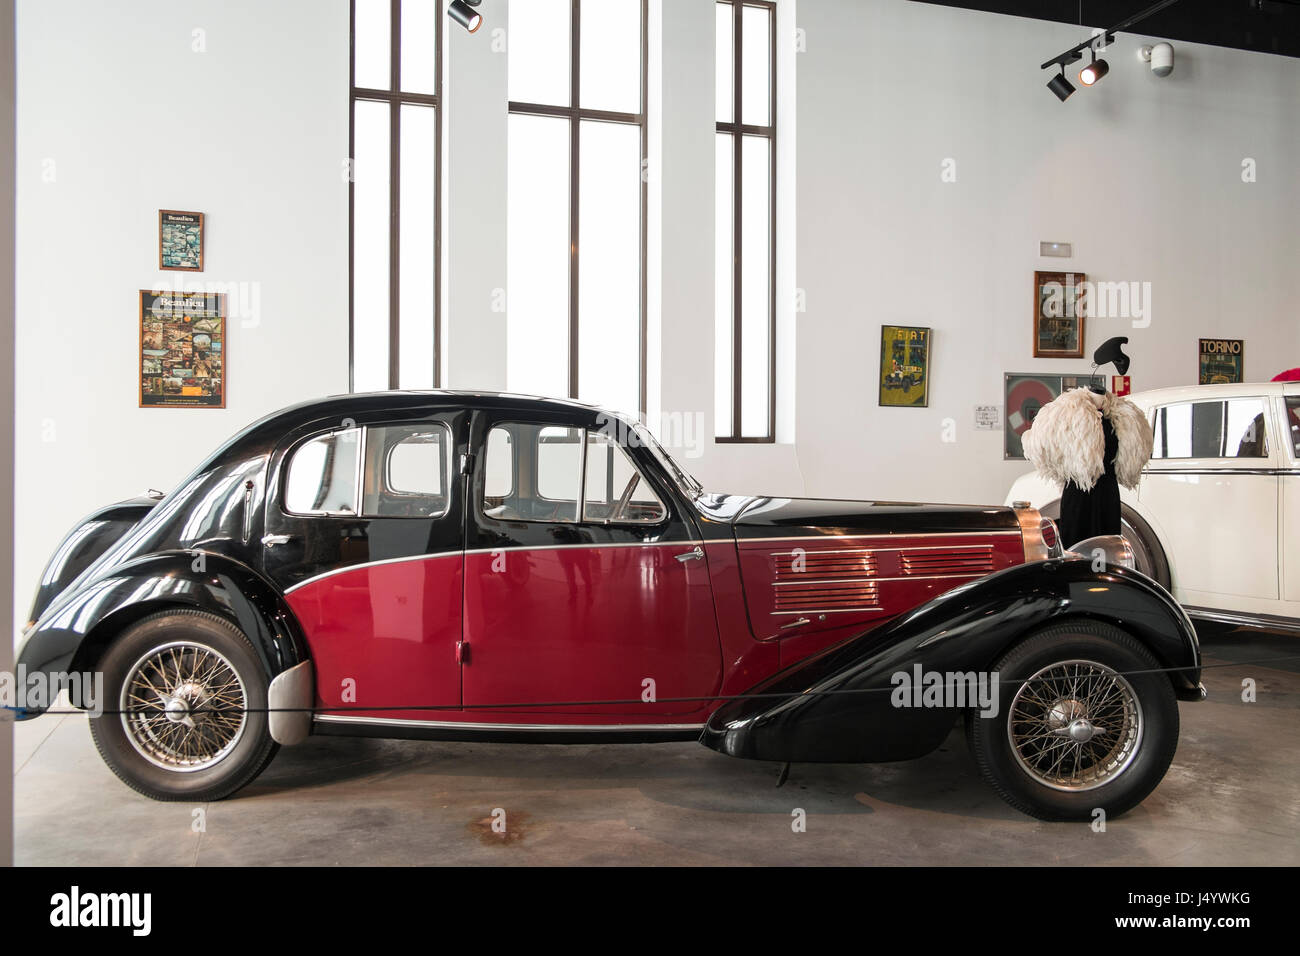 1936 Bugatti Type 57C Galibier. Automobile museum fo Málaga, andalusia, Spain. - Stock Image